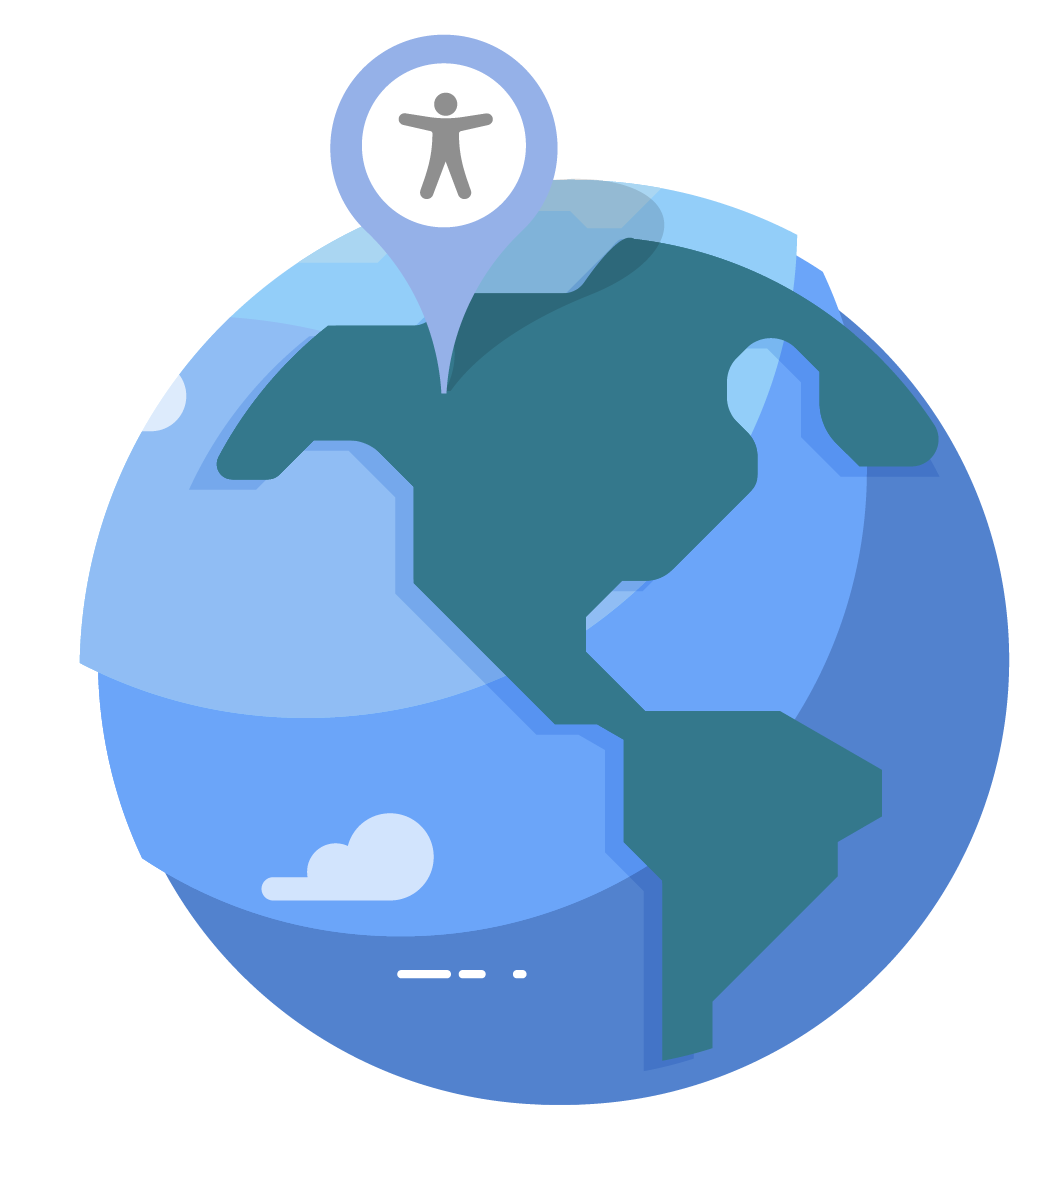 picture of the world globe